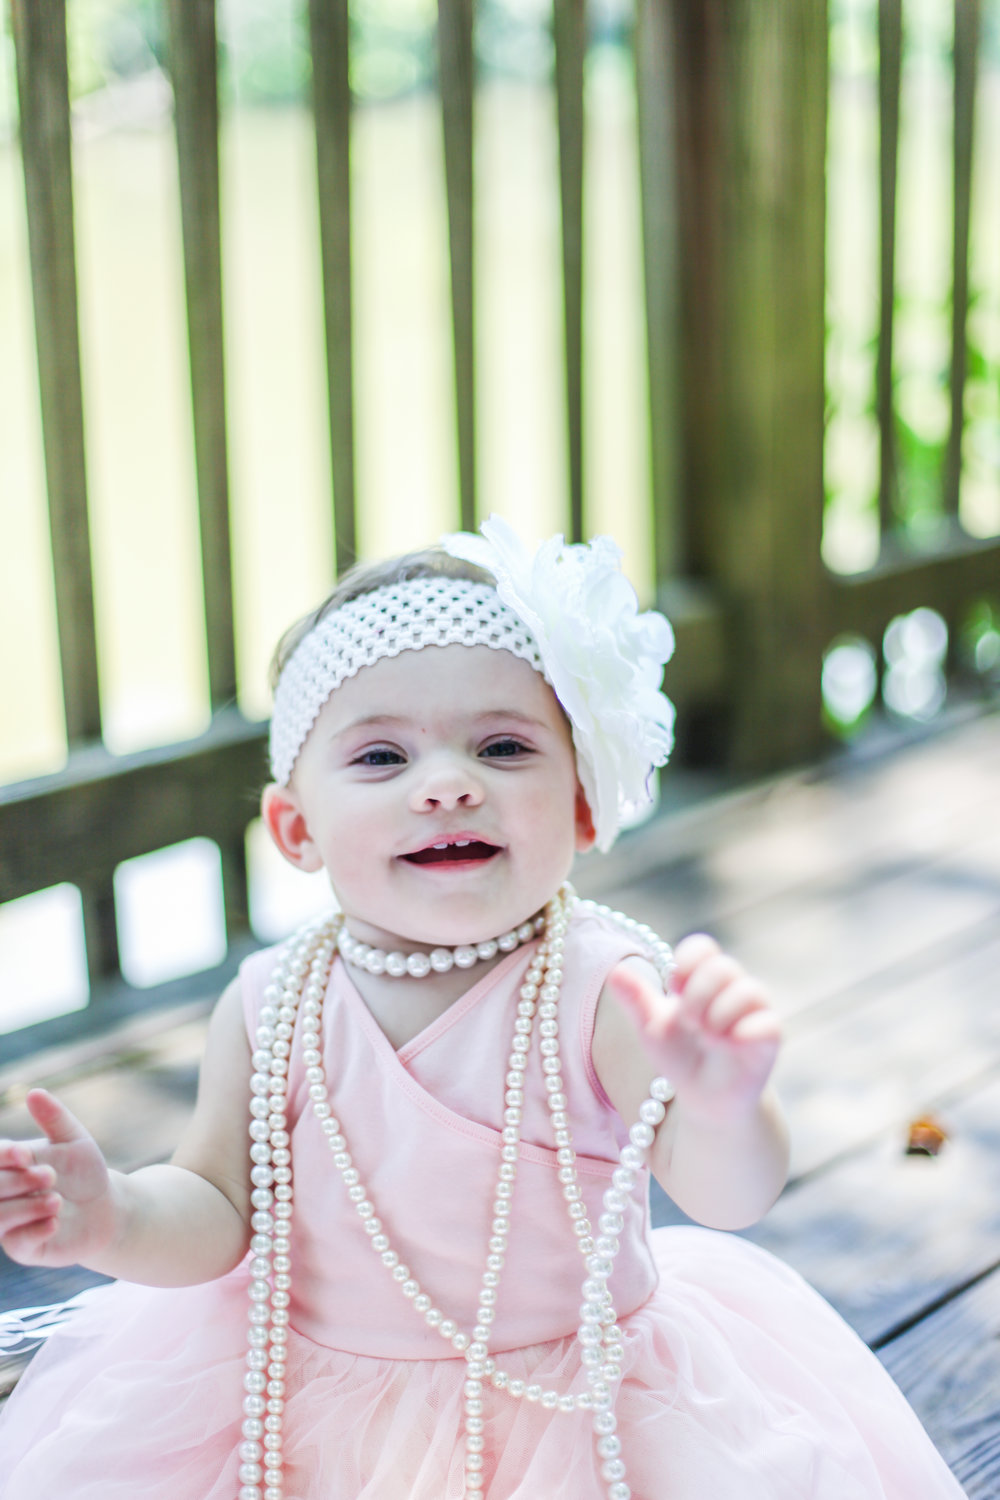 woodstock baby photography angela elliott-39.jpg